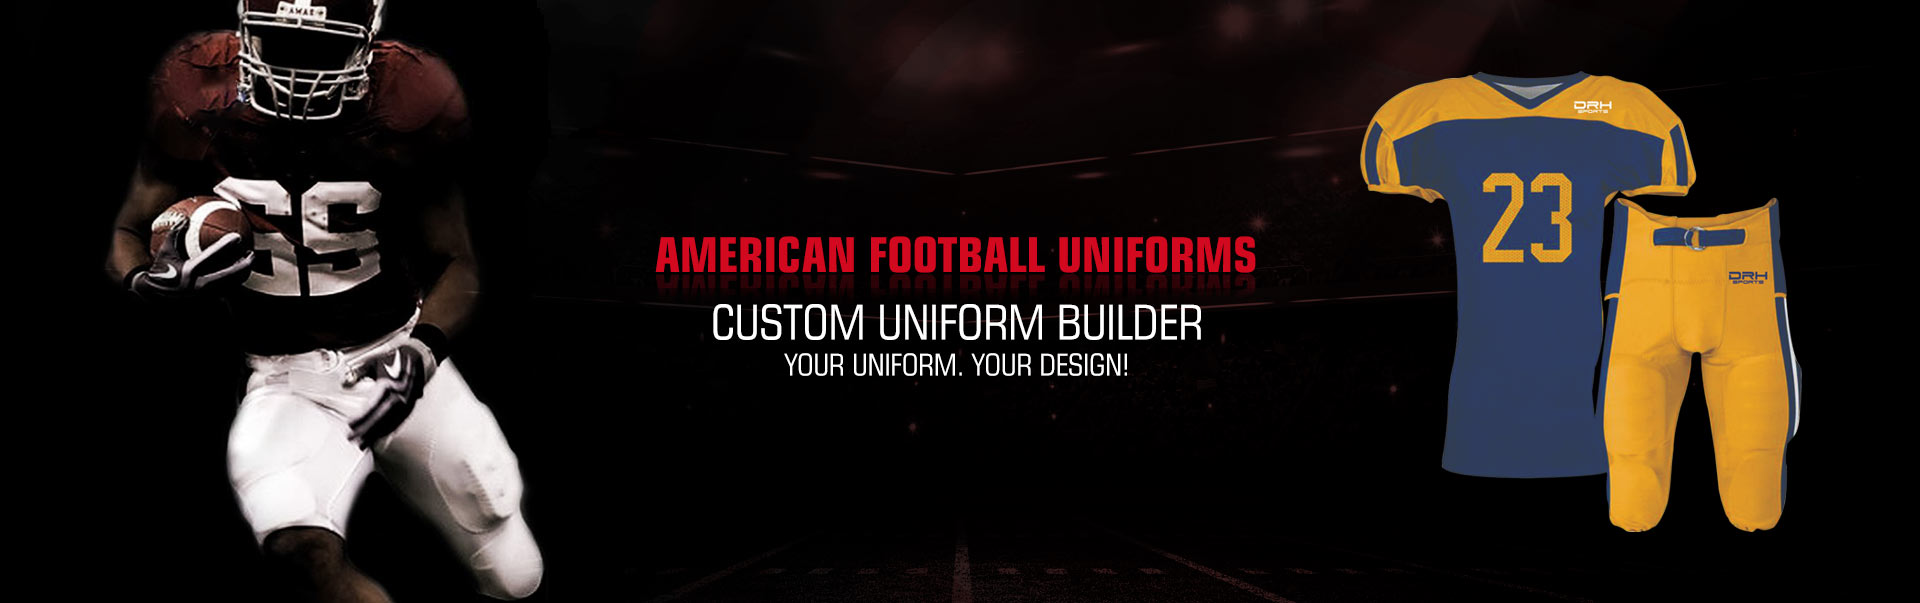 American Football Uniform Wholesaler, Suppliers in Jerez De La Frontera